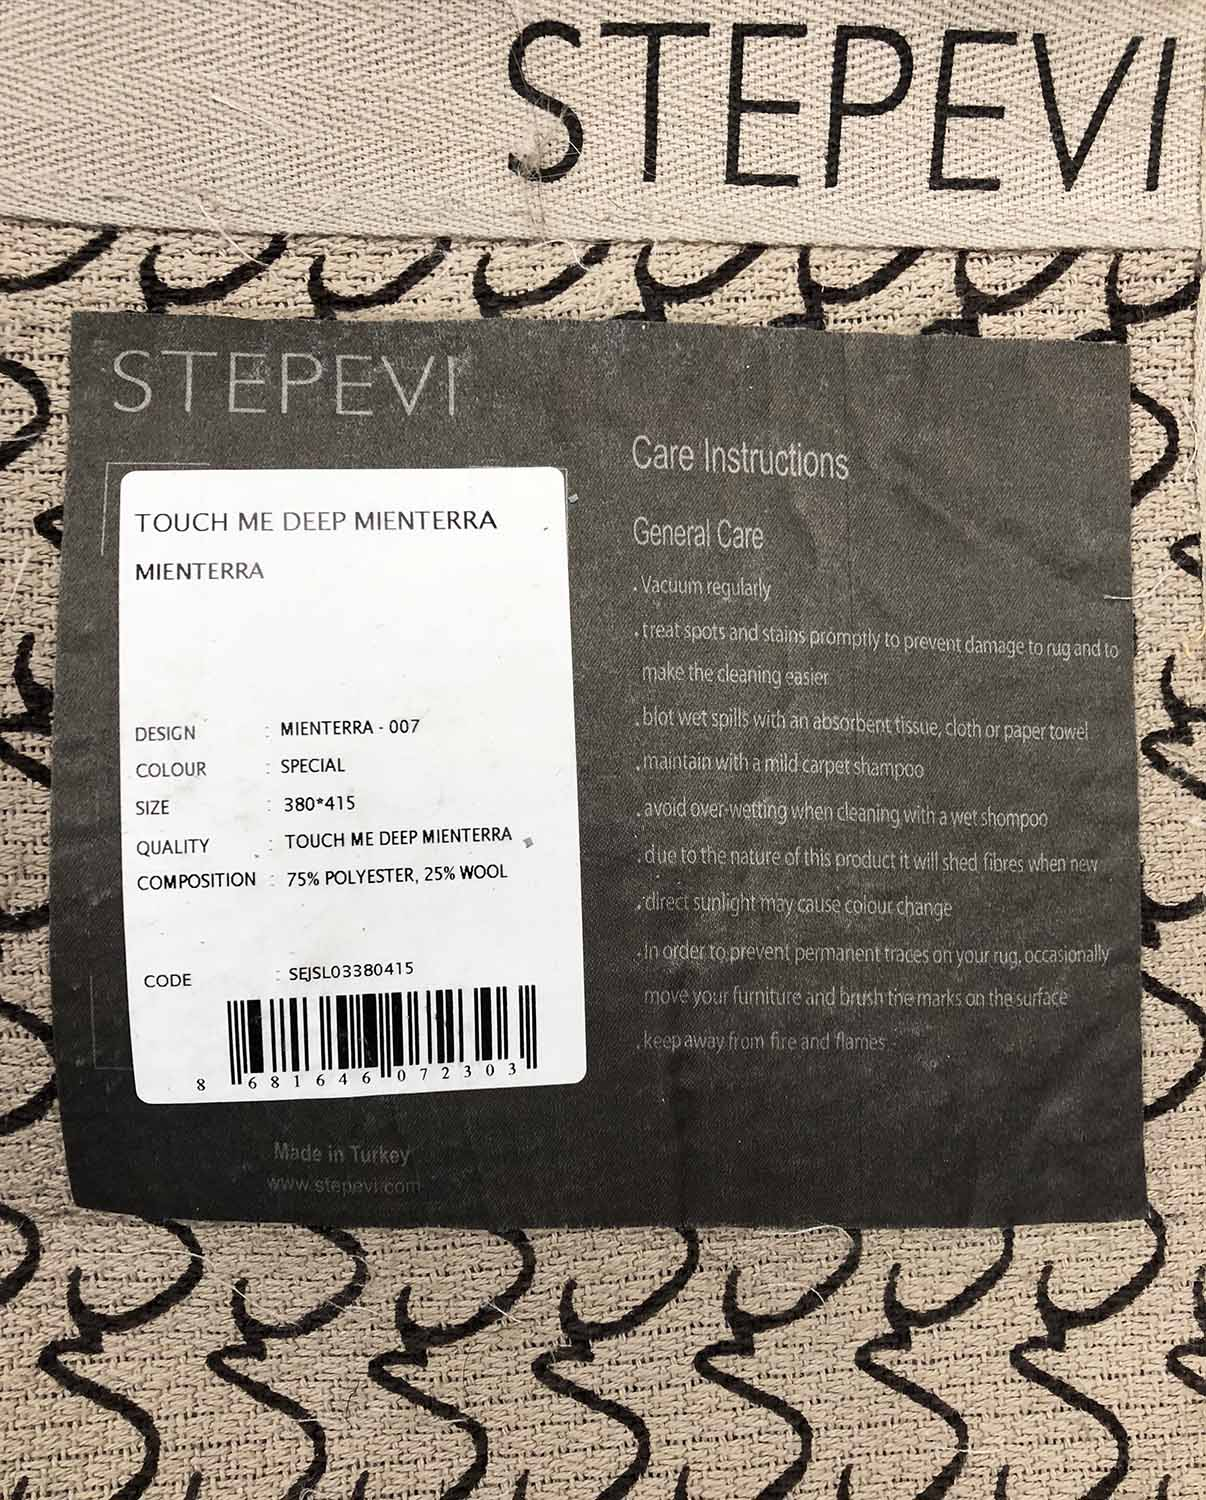 STEPEVI TOUCH ME DEEP MIERTERRA CARPET